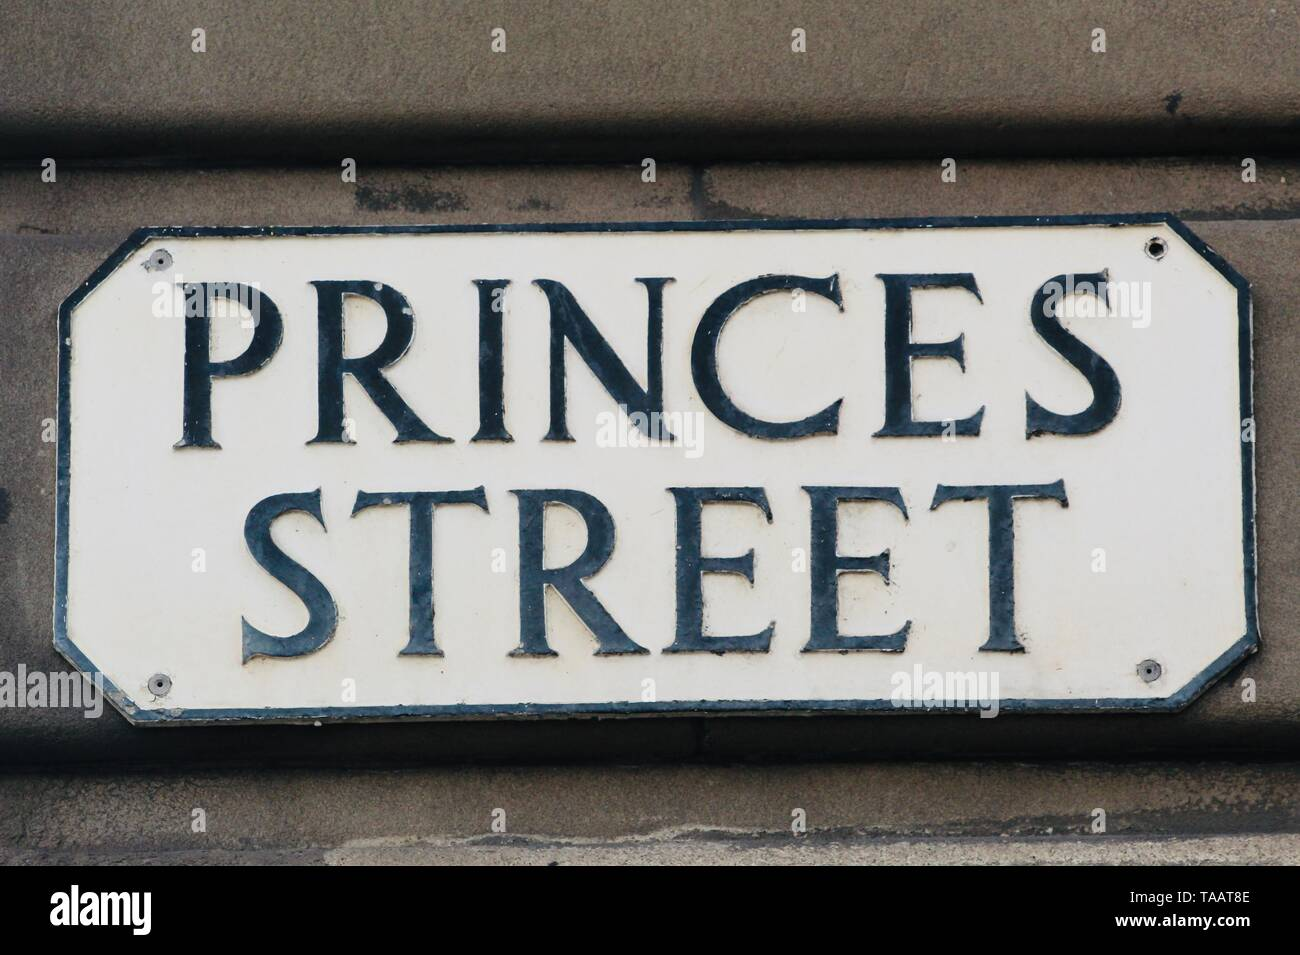 Traditional street name sign for Princes Street in Edinburgh Scotland - Stock Image